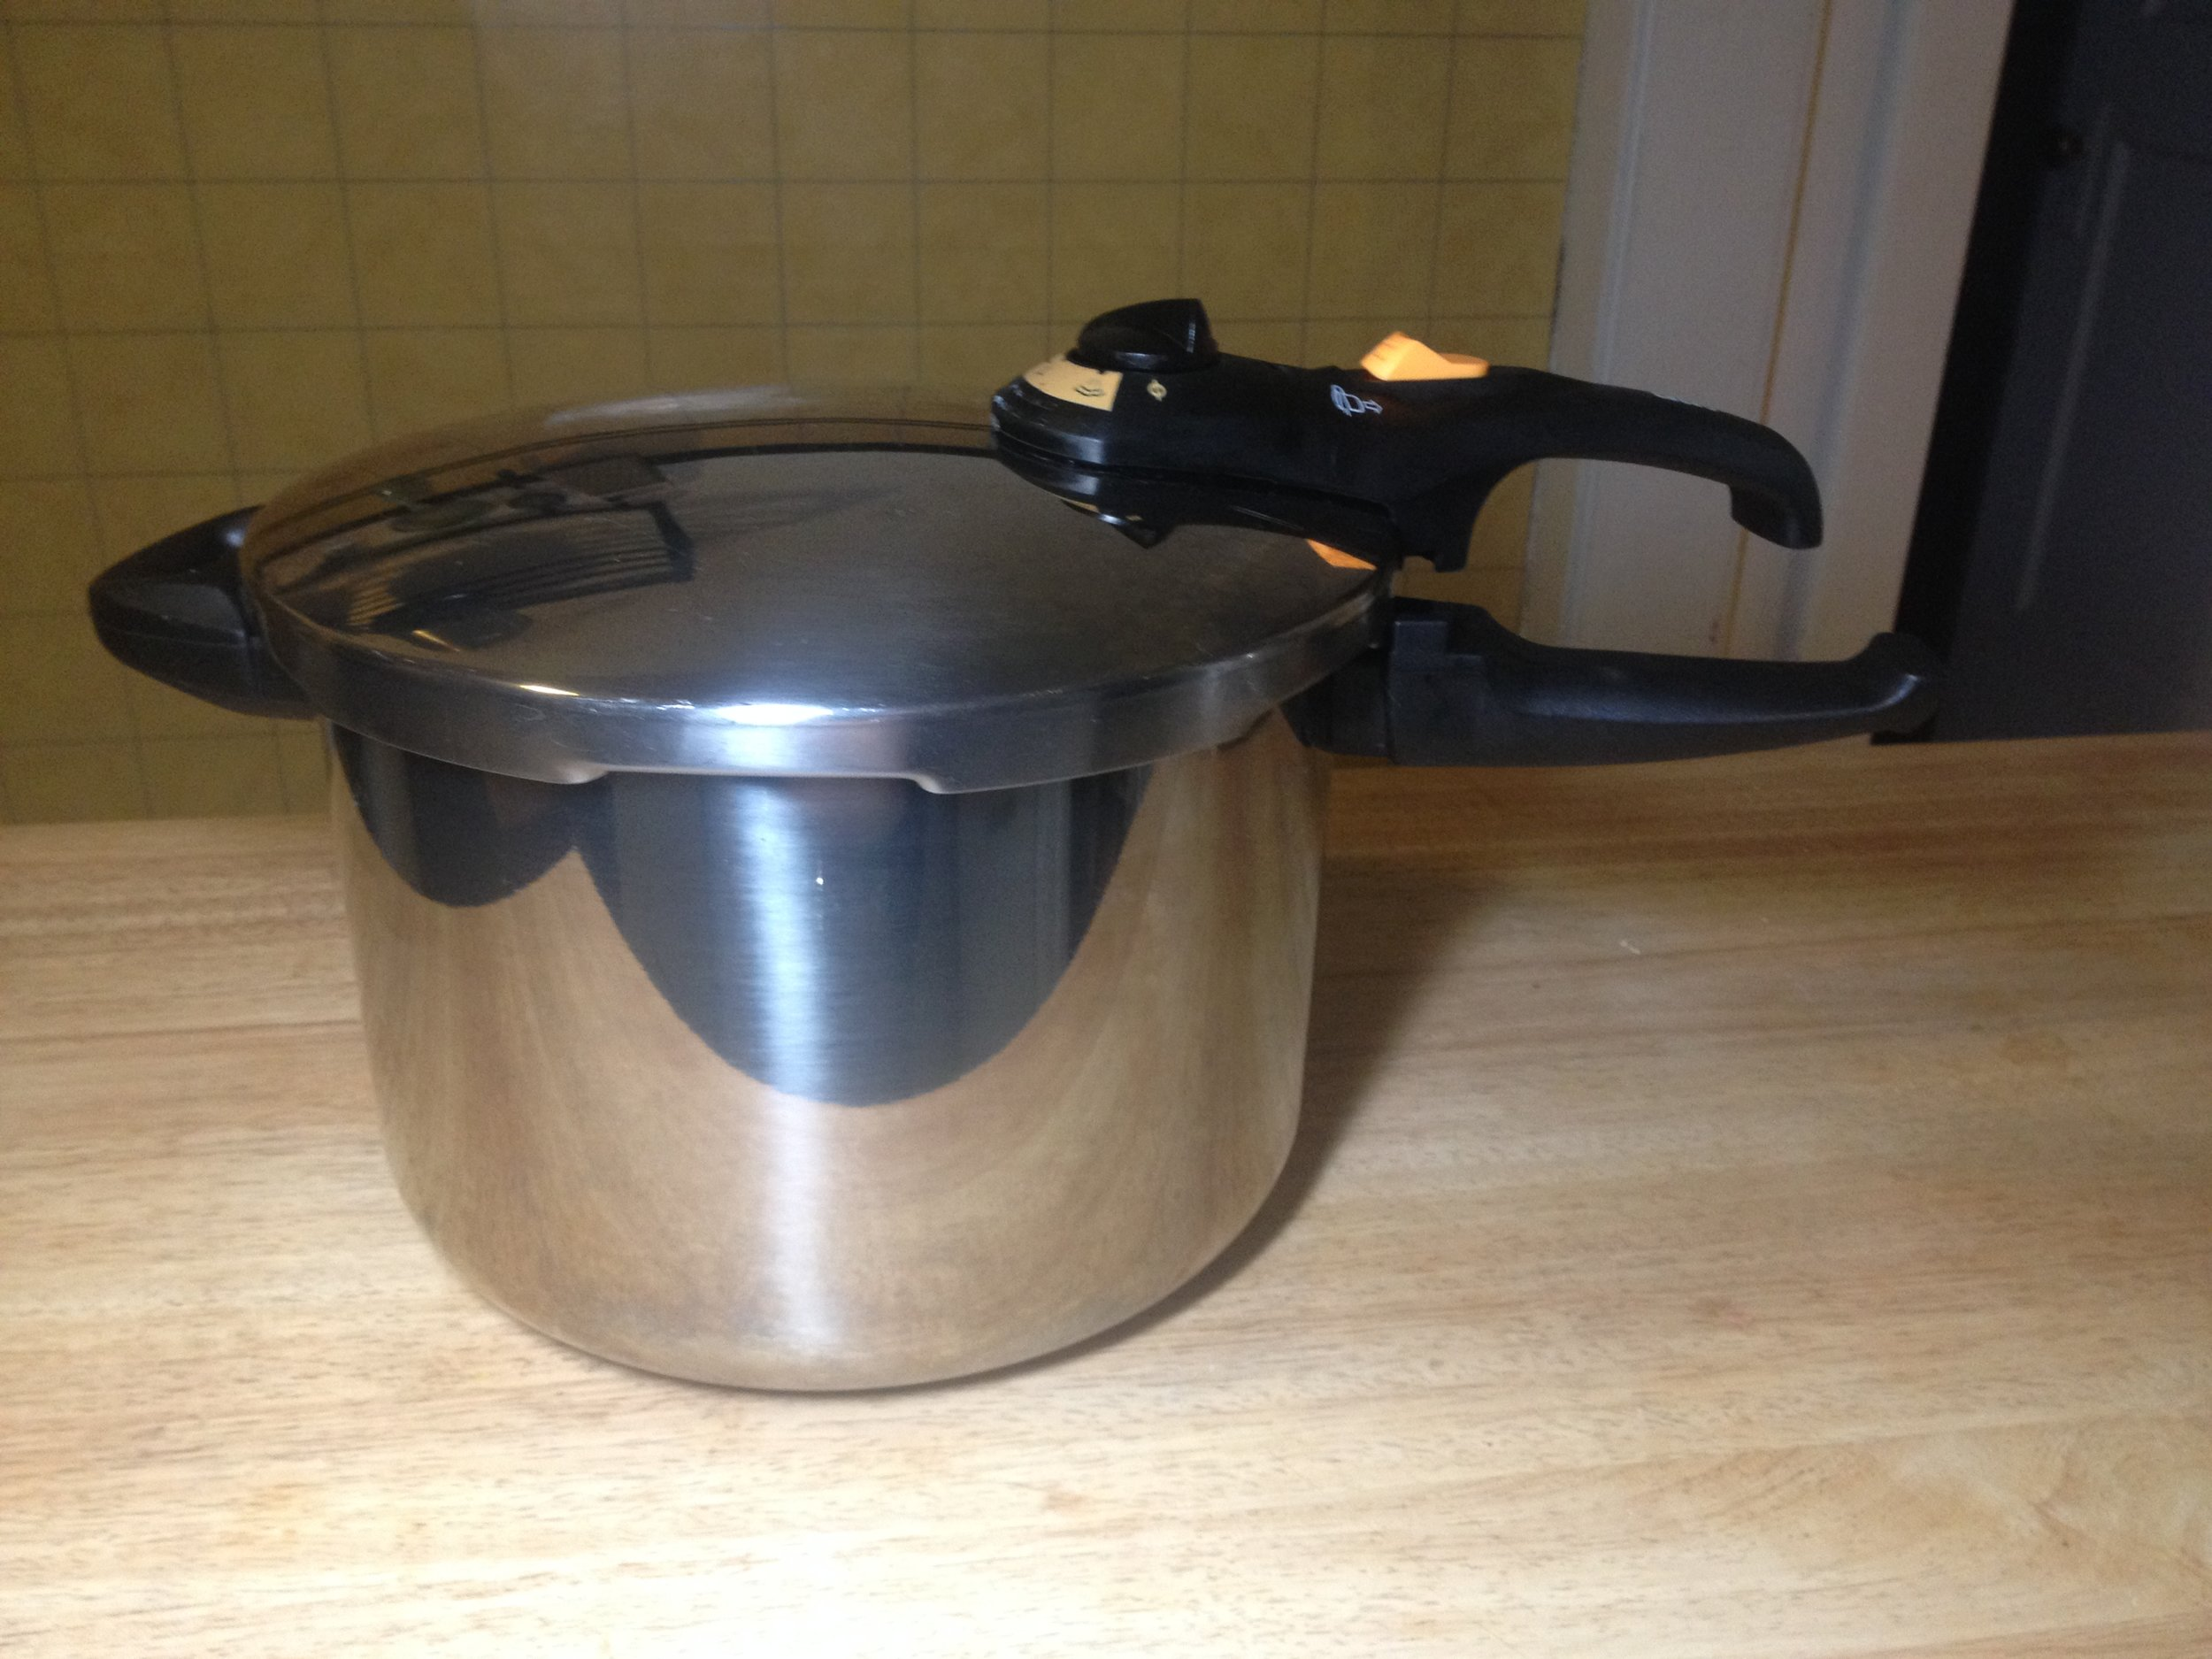 Our beloved Fagor Duo 8-Quart Stainless Steel Pressure Cooker